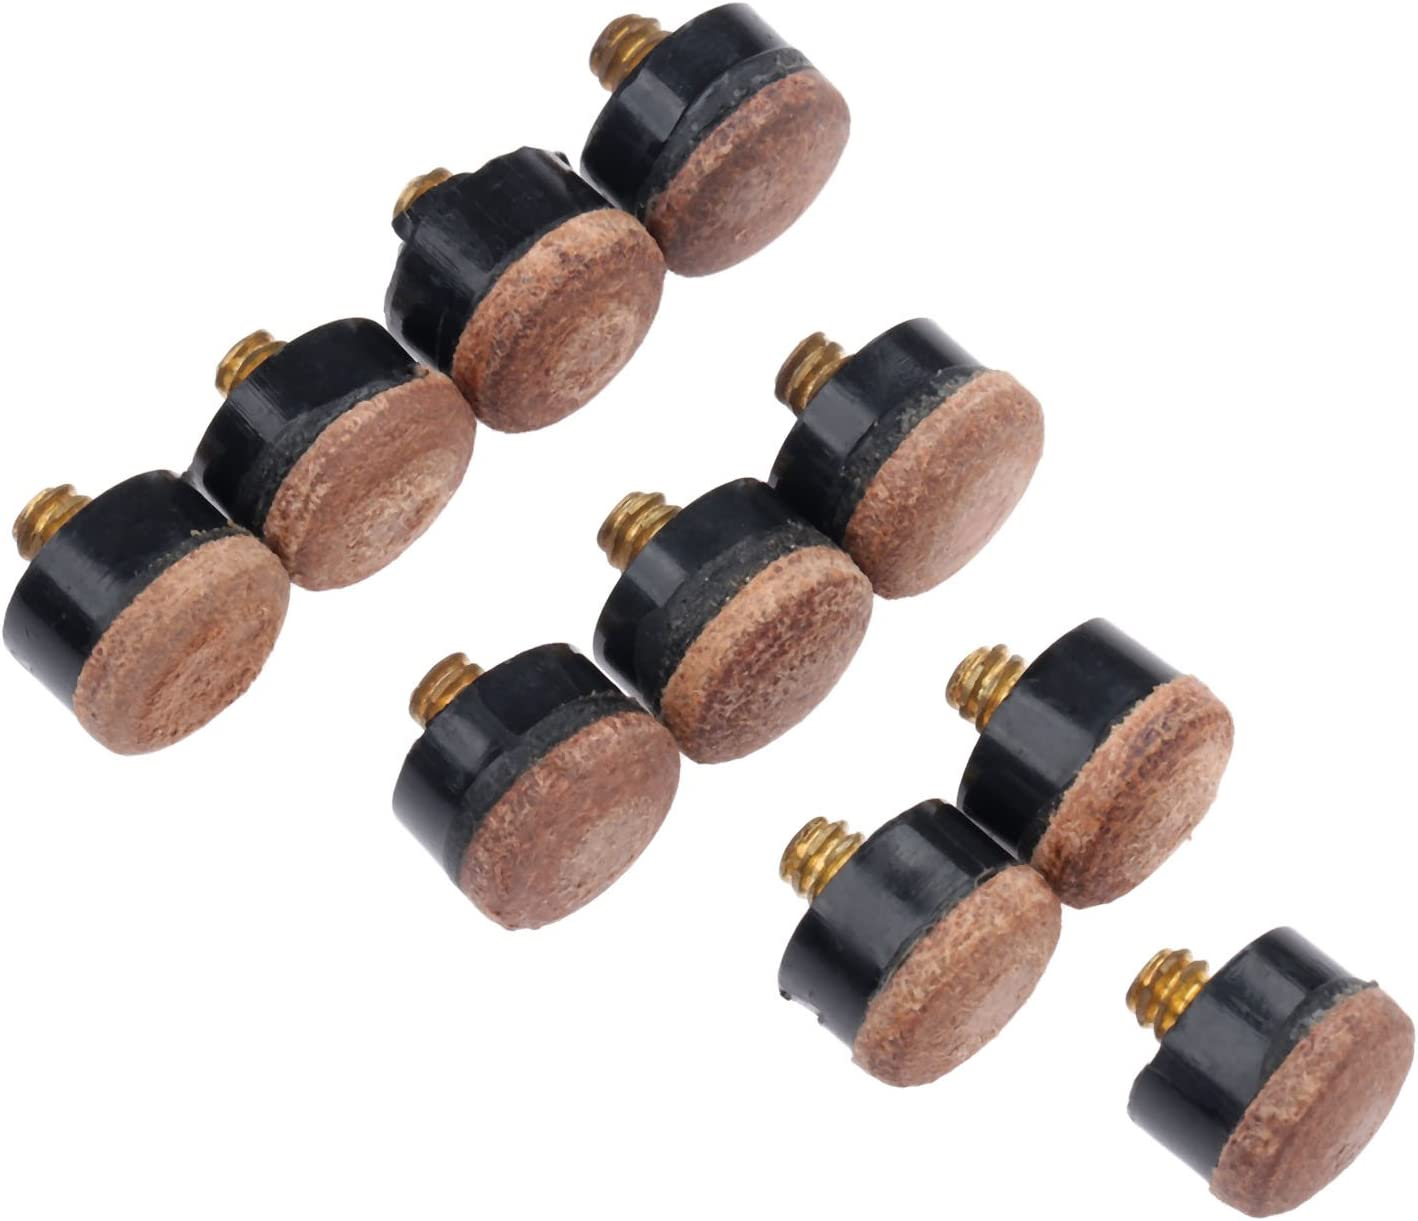 Screw-On Pool Cue Tips MUXSAM 10Pcs Billiards Replacement Parts Pool Cue Stick Ferrules